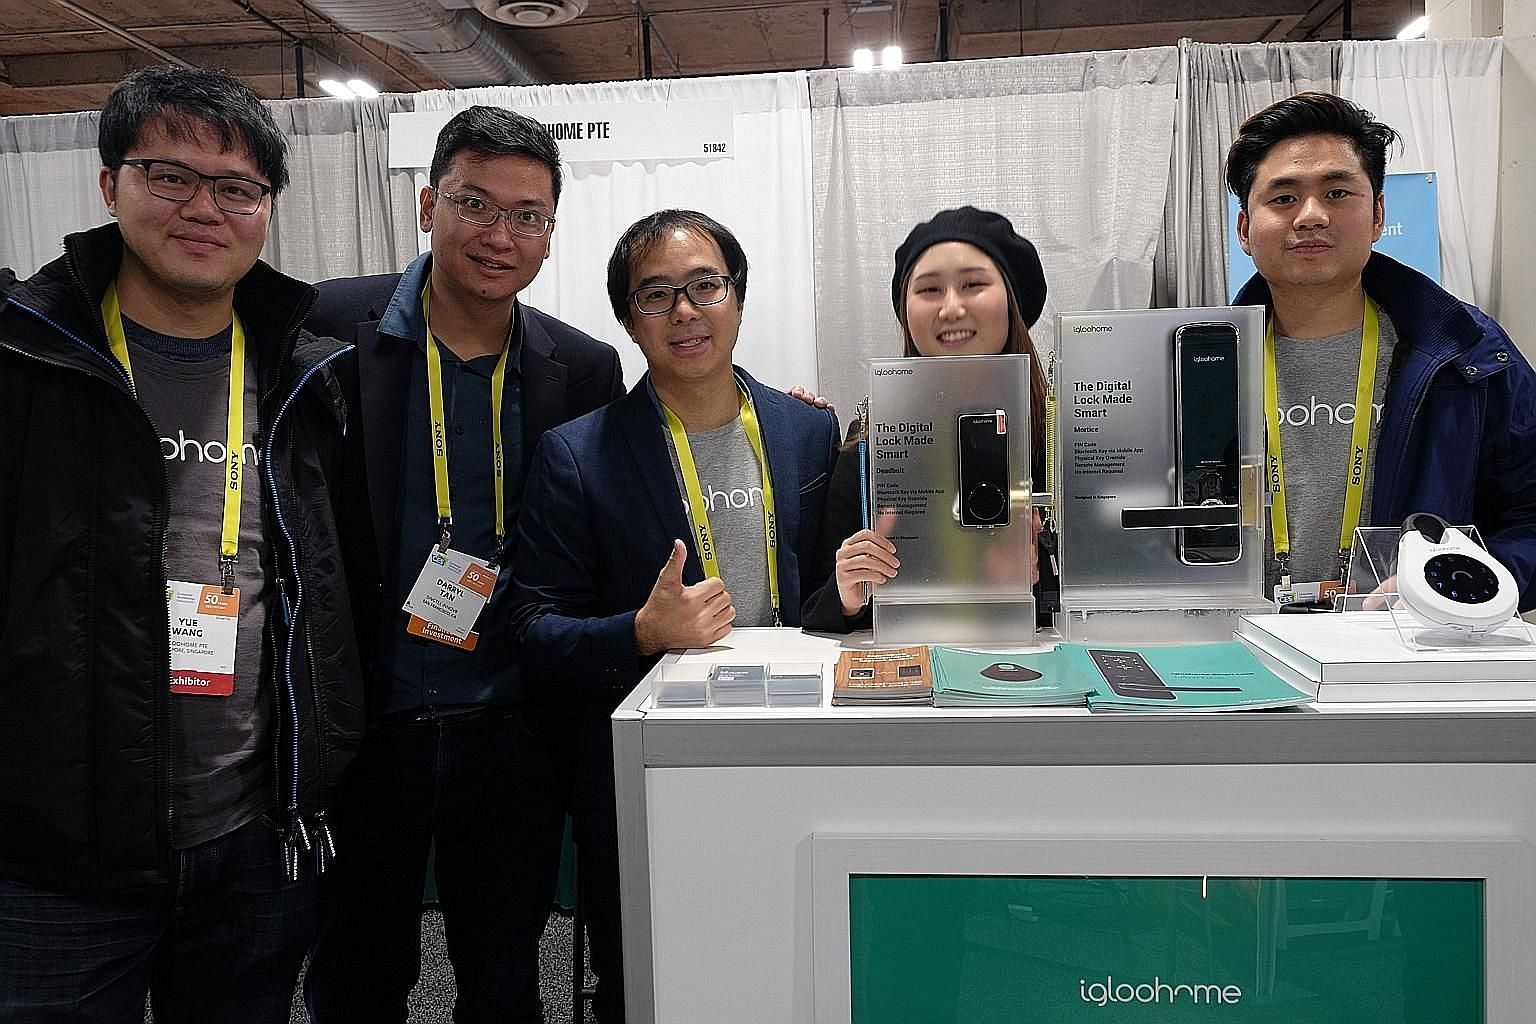 Mr Darryl Tan of Singtel Innov8 (second from left) with the team from igloohome (from left): COO and co-founder Yue Wang, Mr Chow, Ms Hara Ku and Mr Kenny Wang, sales and marketing director. Presenting the local start-up's Tiny1 astronomy camera at L